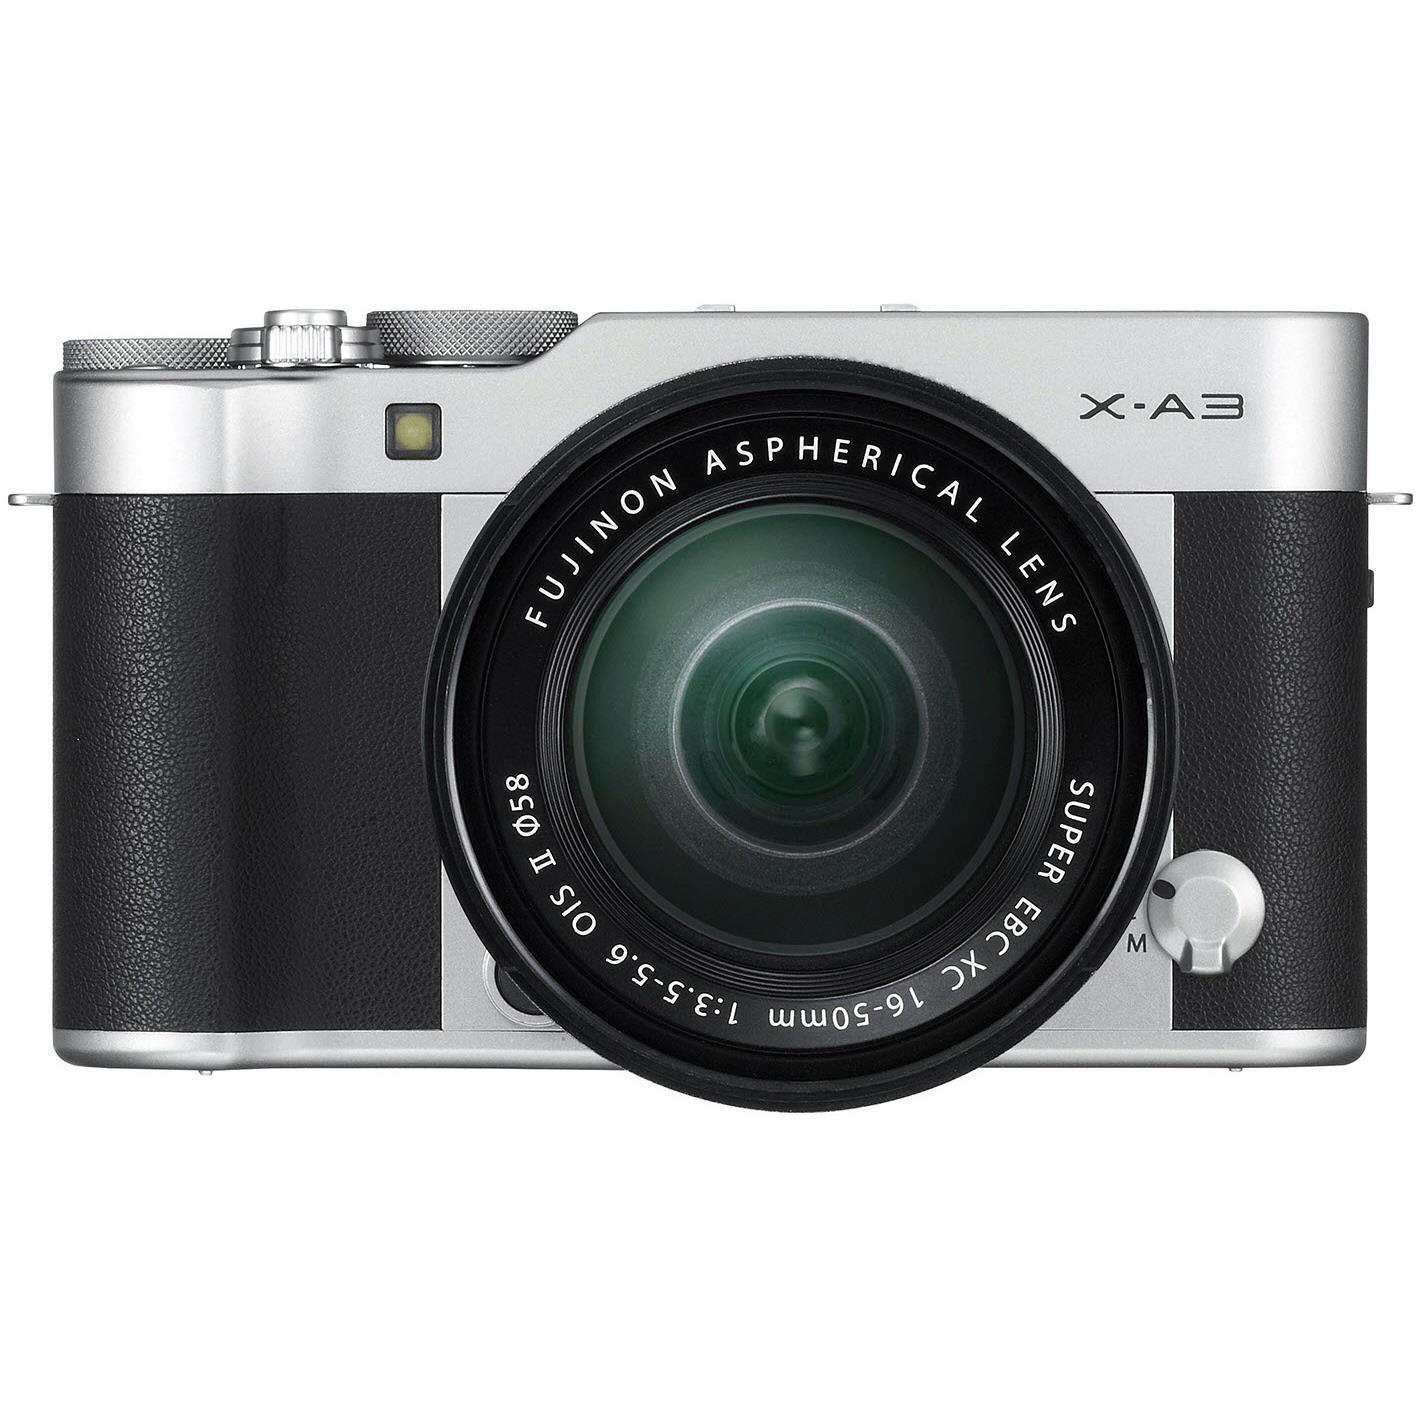 Fujifilm X-A3 Mirrorless Camera with XC 16-50mm Lens (Silver)